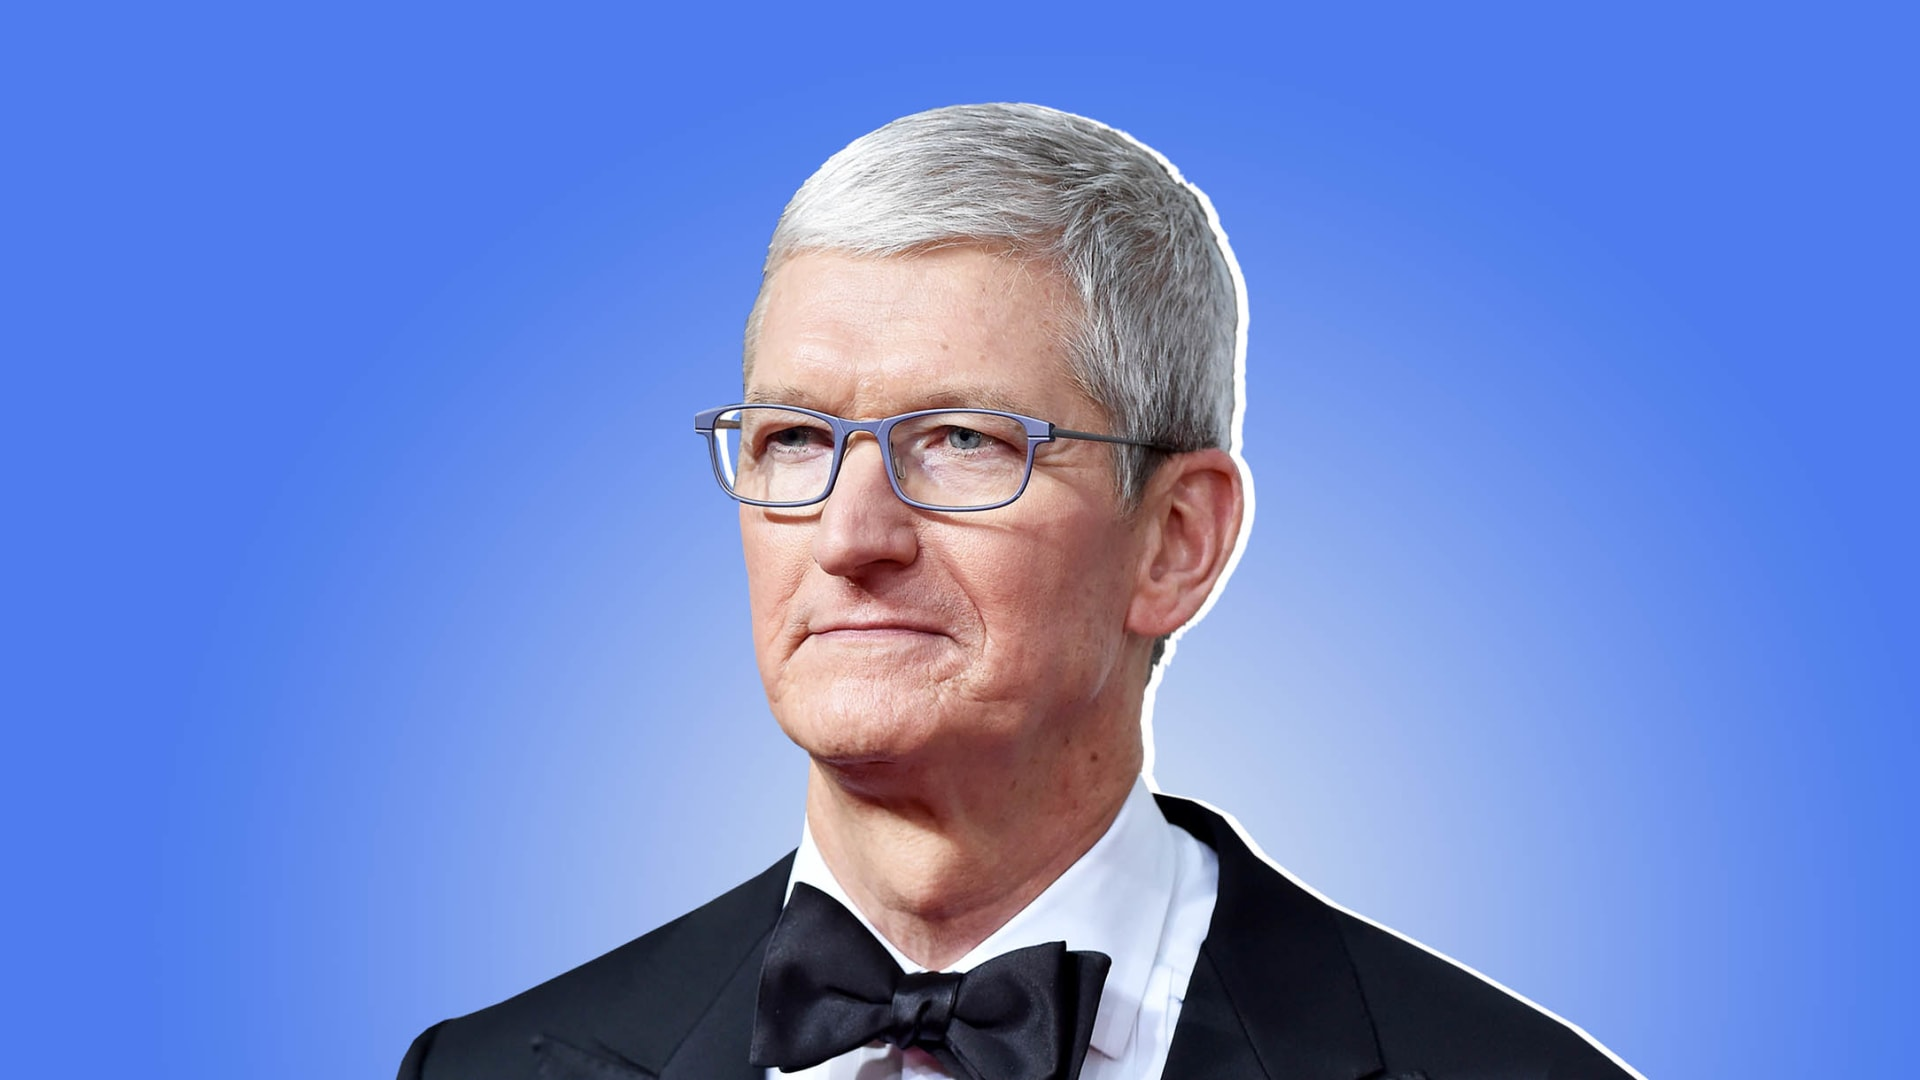 Tim Cook's Apple Is Facing the Unthinkable: Backlash From Its Developers, Employees, Users, and Congress